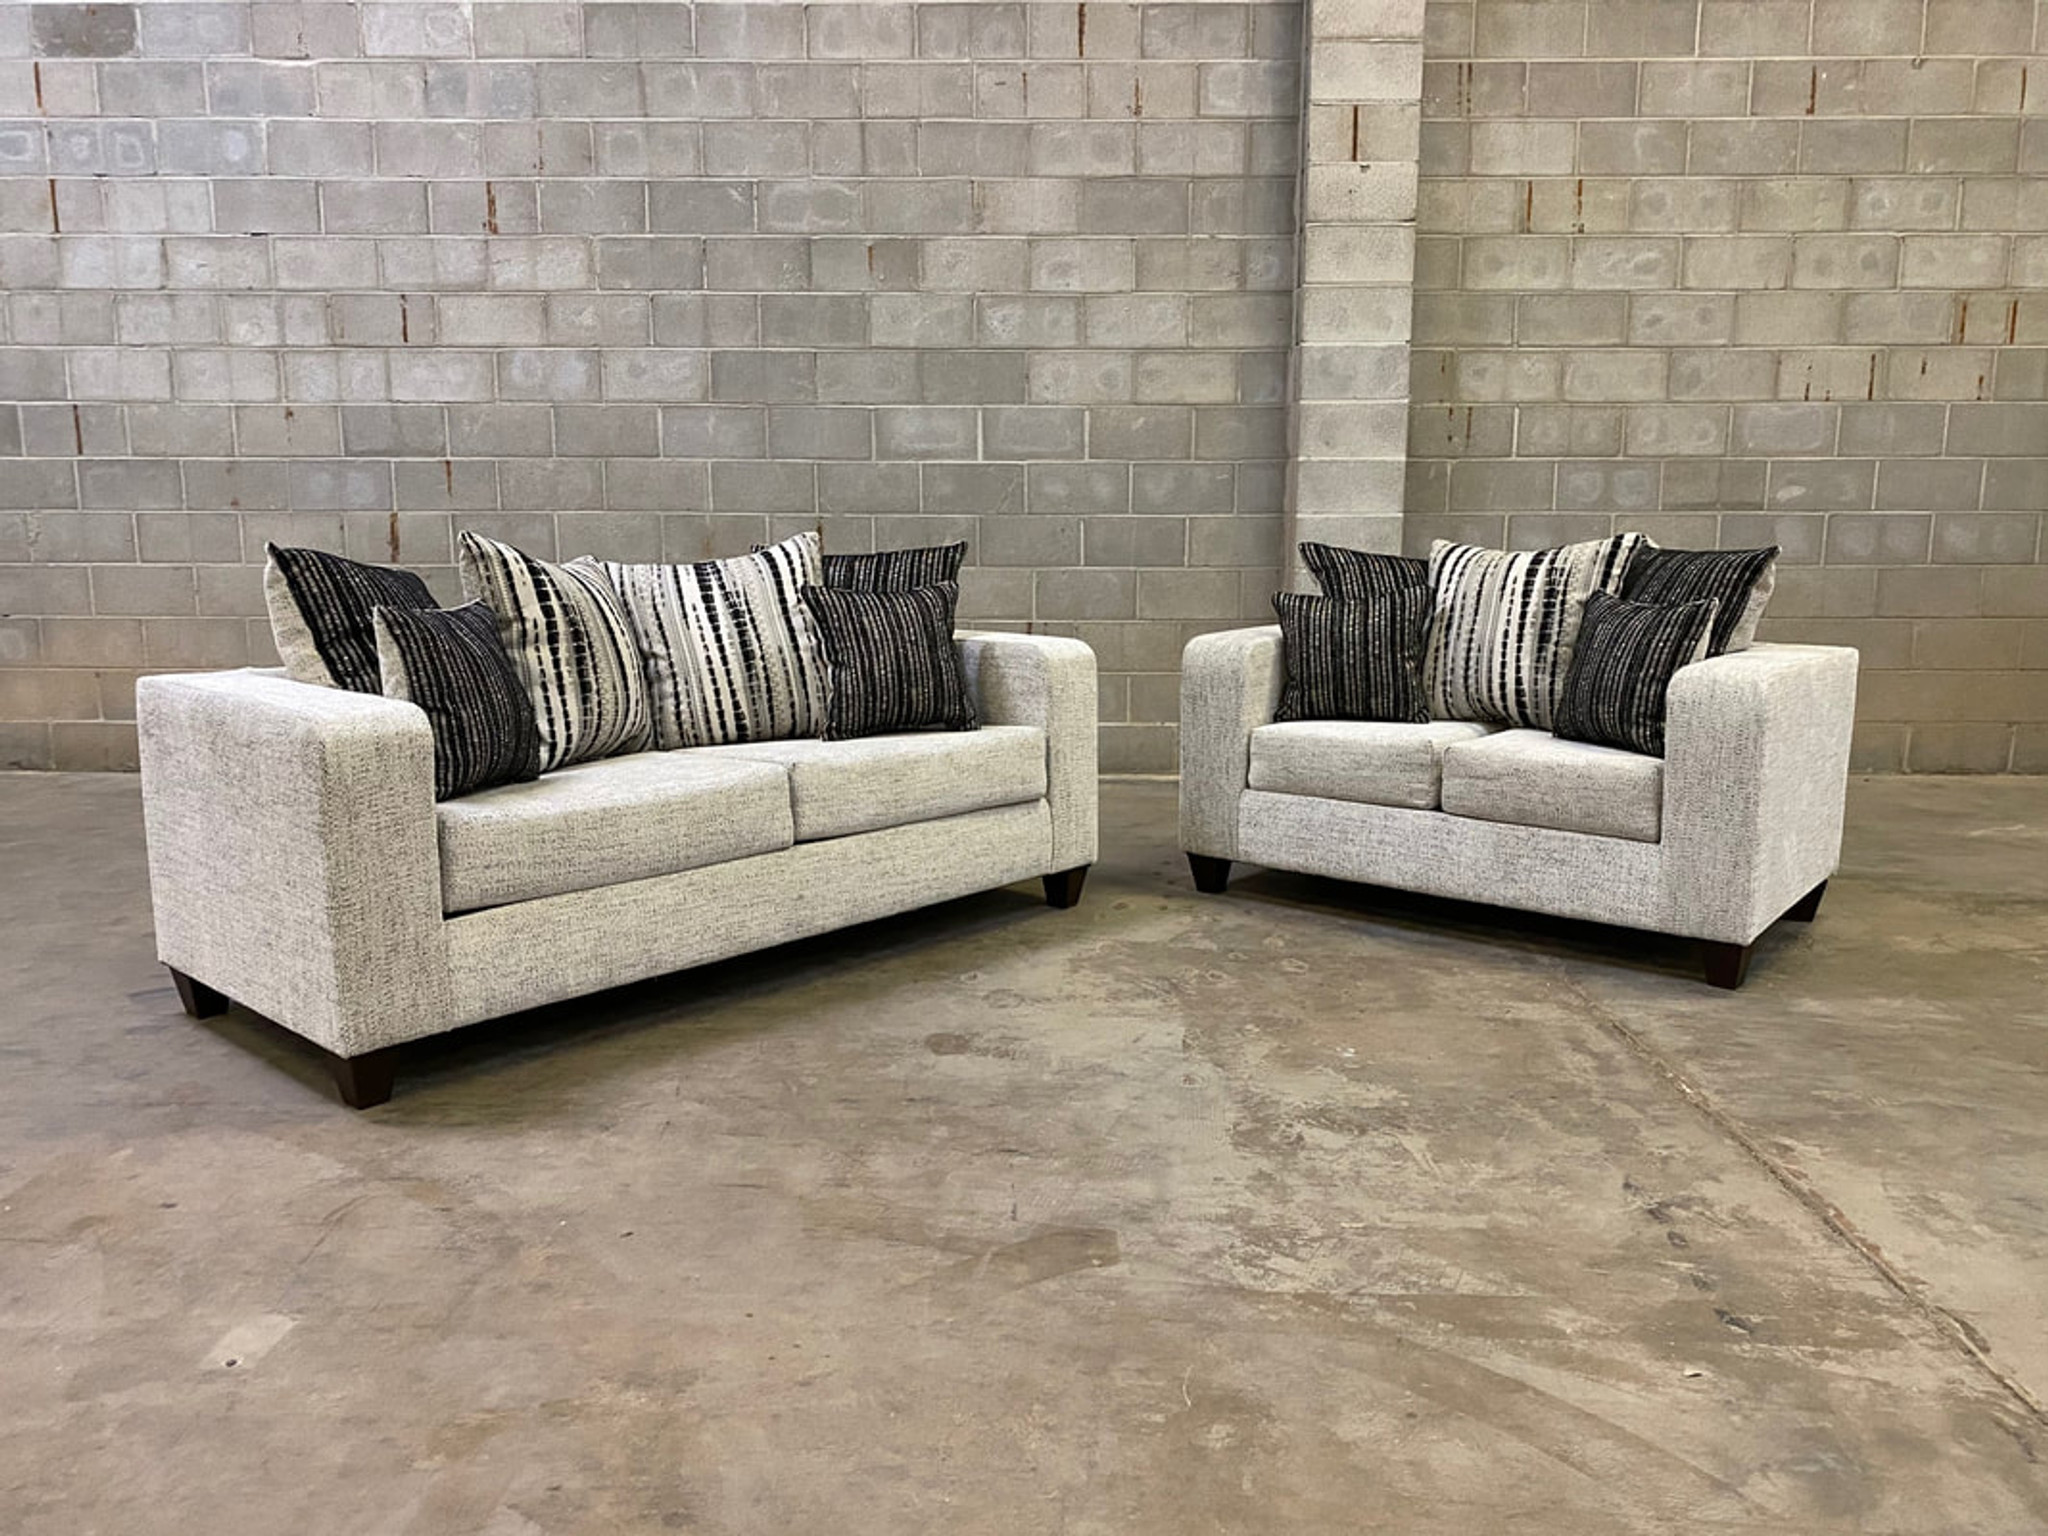 Picture of: 2pcs Urban Sofa And Loveseat In Off White Stucco Color With Accent Pilllows Happy Home Industries Houston Texas 110 Urban